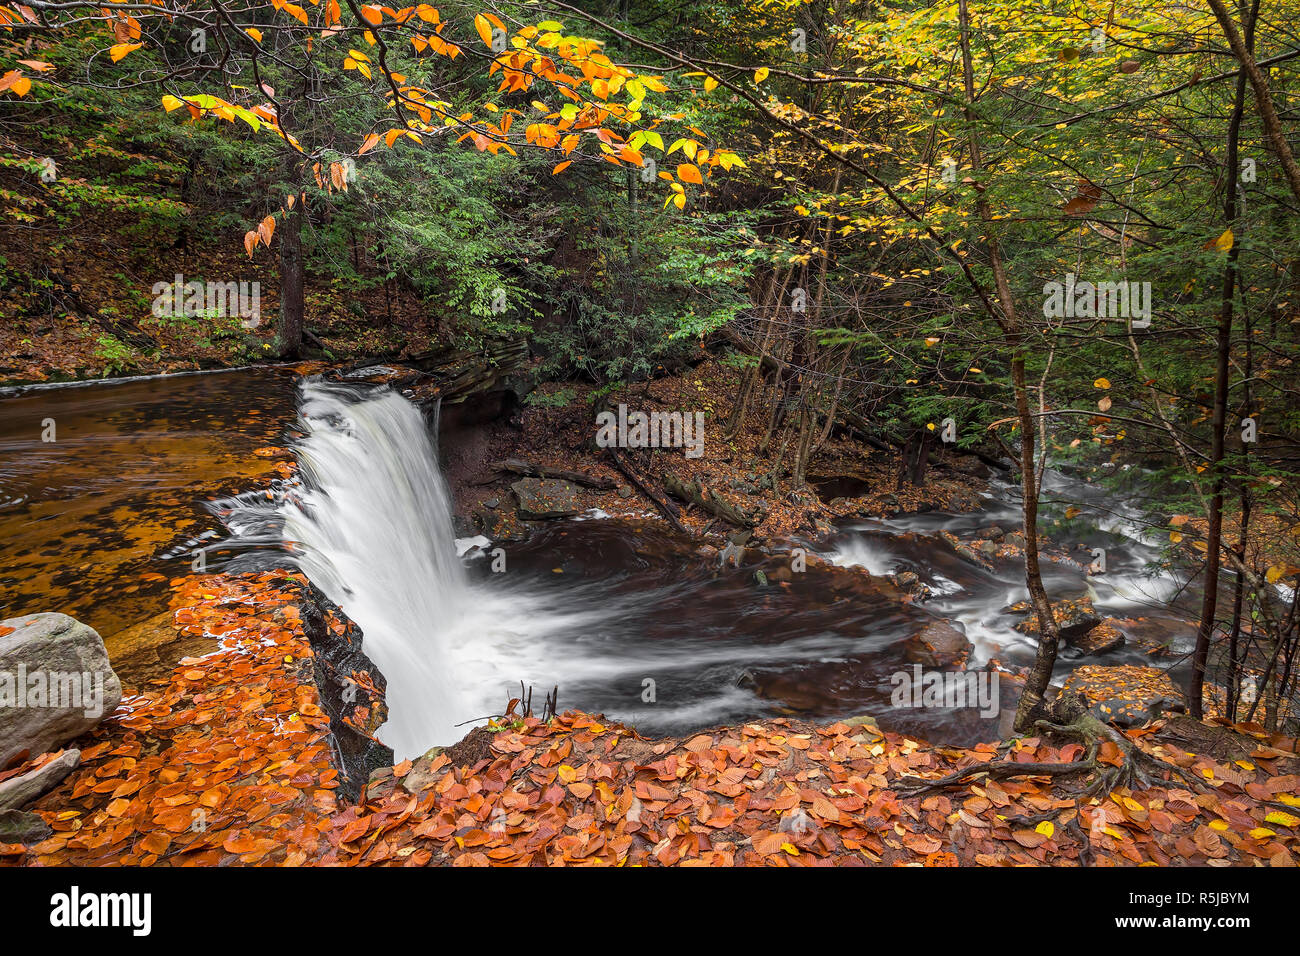 Oneida Falls, a beautiful waterfall in Ganoga Glen at Pennsylvania's Ricketts Glen State Park, flows through an autumn landscape as viewed from above. Stock Photo